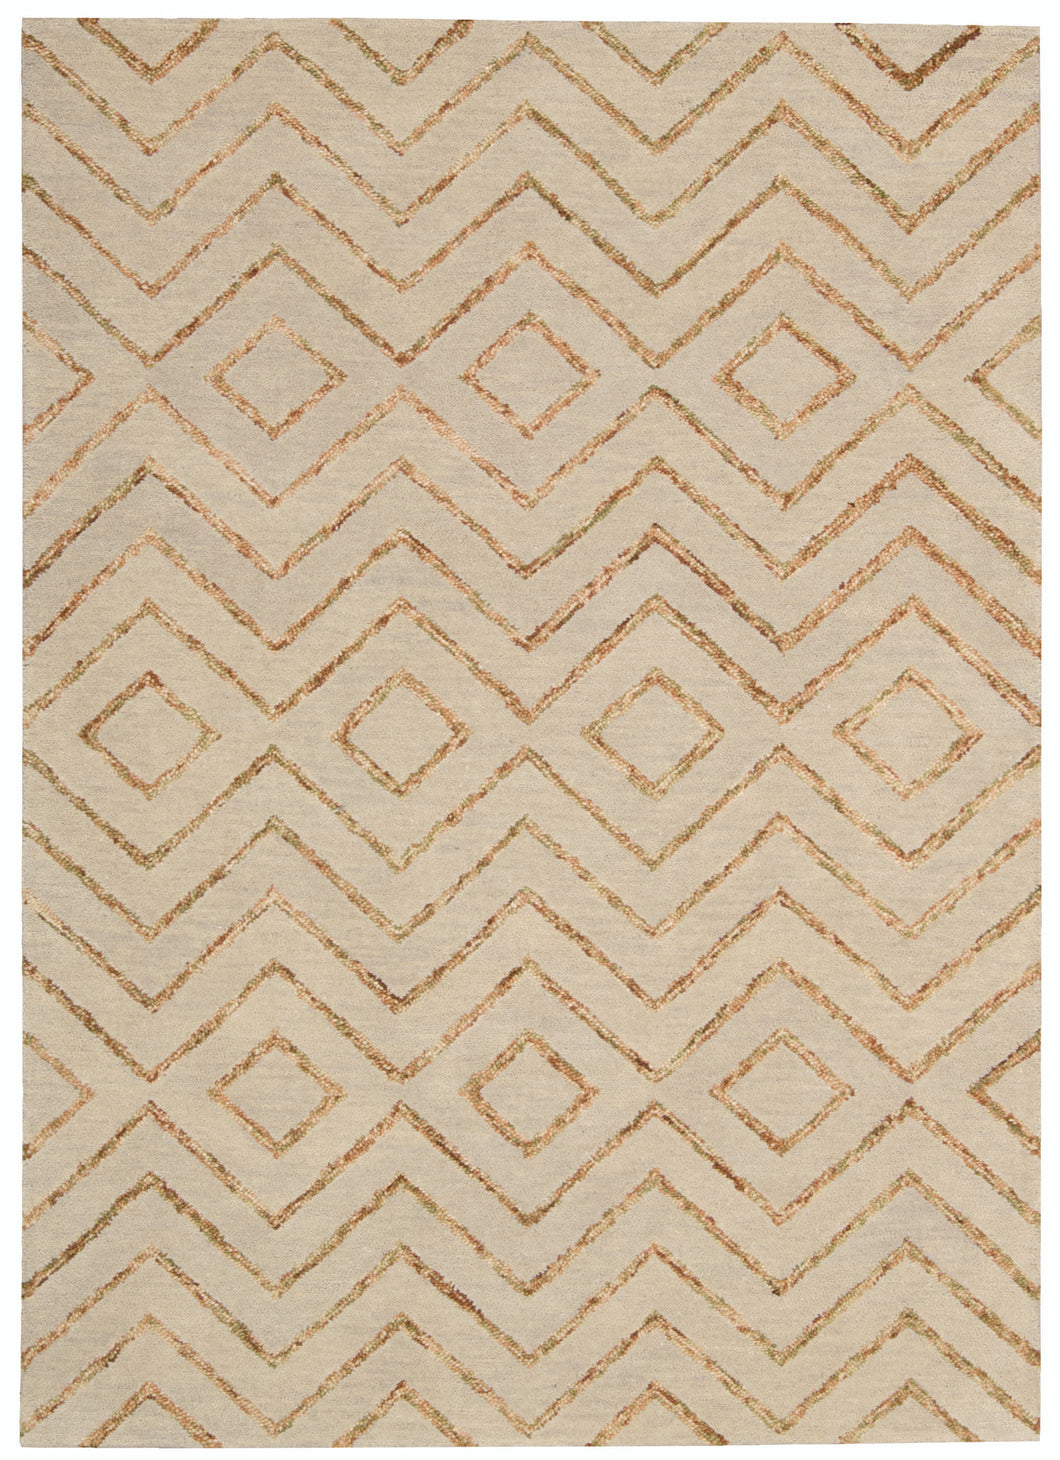 Barclay Butera Intermix Sand Area Rug By Nourison INT04 SAND (Rectangle) | BOGO USA